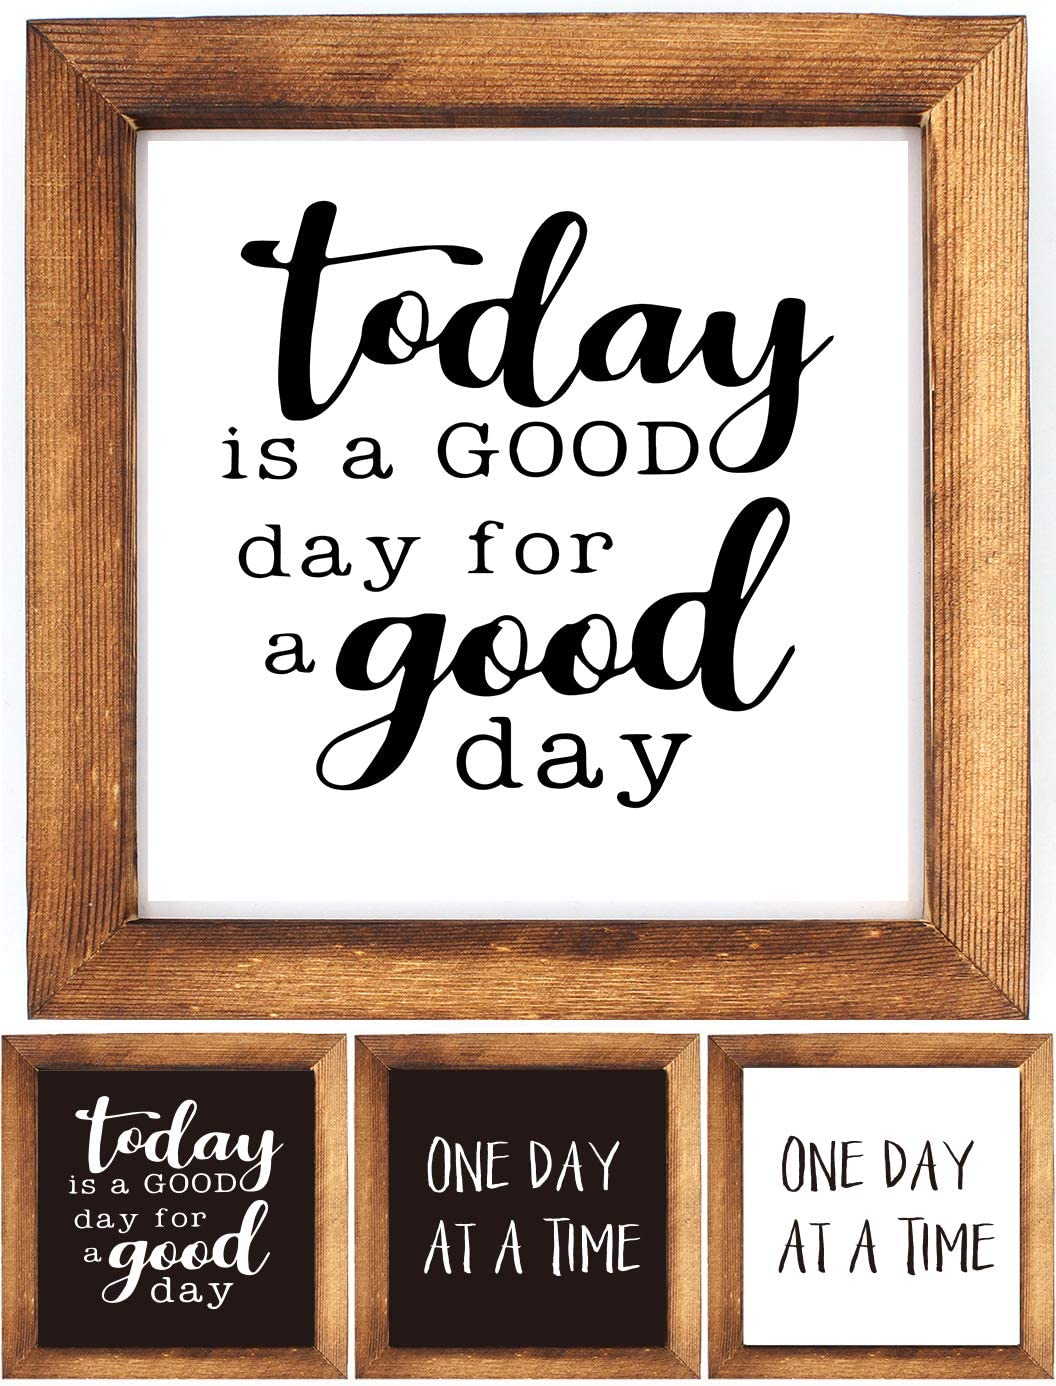 KU-DaYi Wood Framed Block Sign -Today is A Good Day for A Good Day, One Day at A Time, Funny Inspirational Rustic Farmhouse Wooden Wood Framed Wall Hanging Sign Art Decor